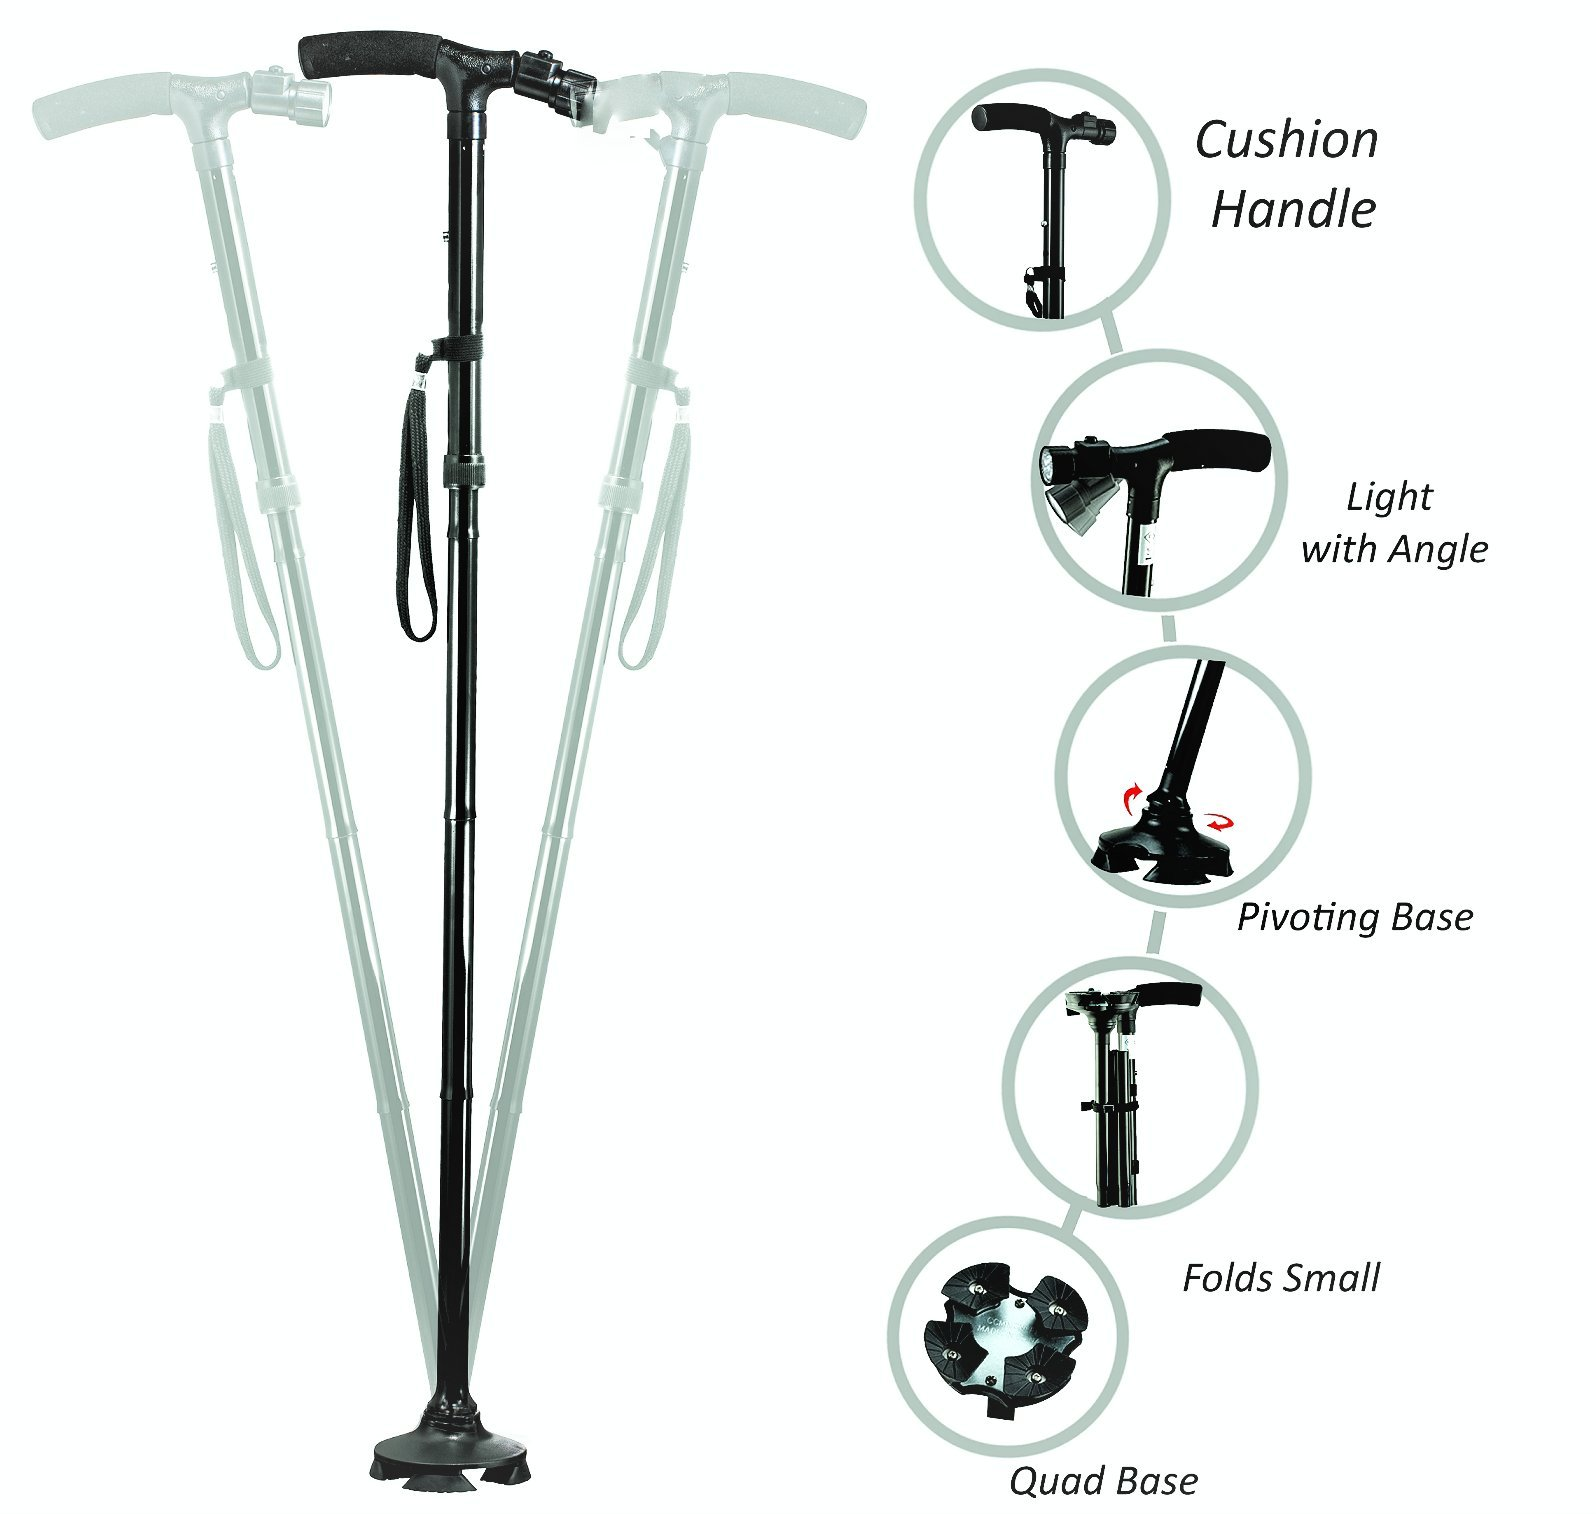 Medi Cane Folding Travel Cane With Pivoting Wide Quad foot Base And Adjustable 6 Bulb LED Flashlight (Medium)